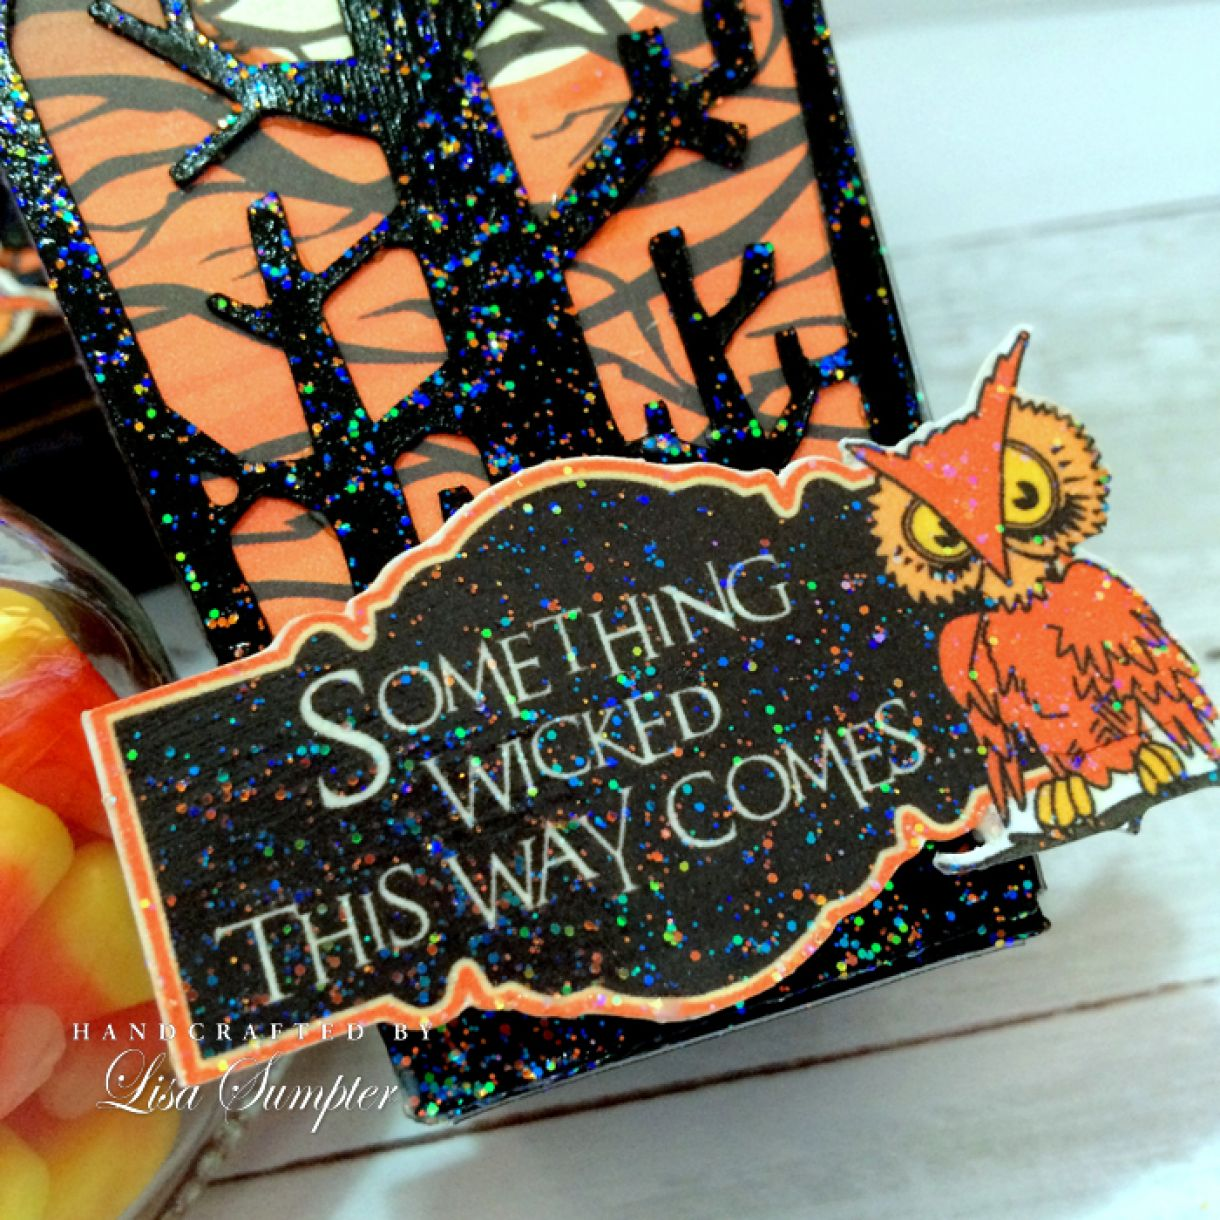 Lisa  Sumpter  Candy  Corn  Coffins 3